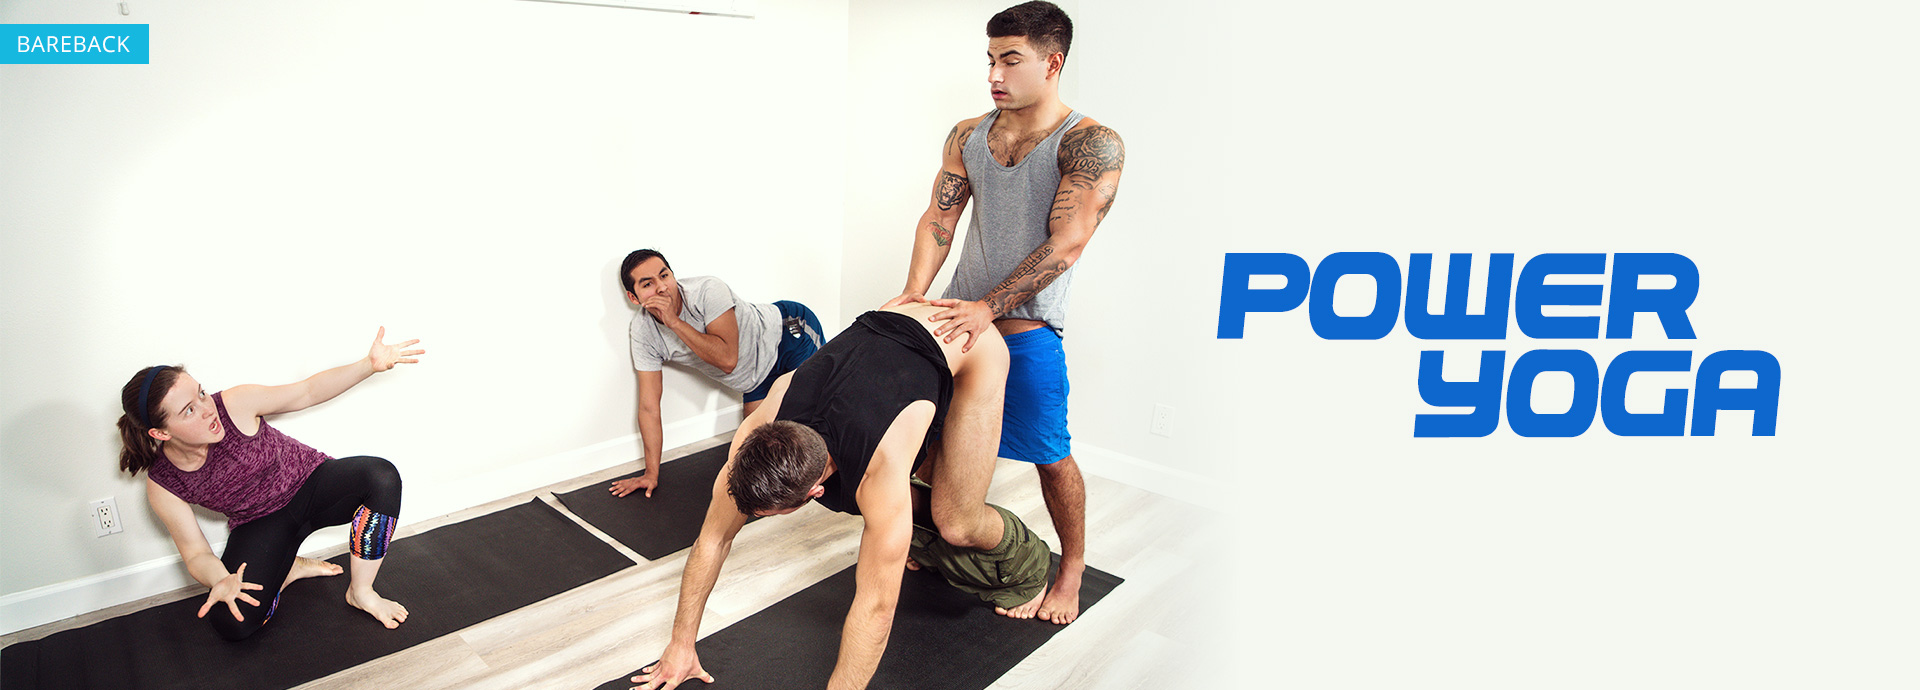 Men Power Yoga Featuring Dante Colle and Vadim Black